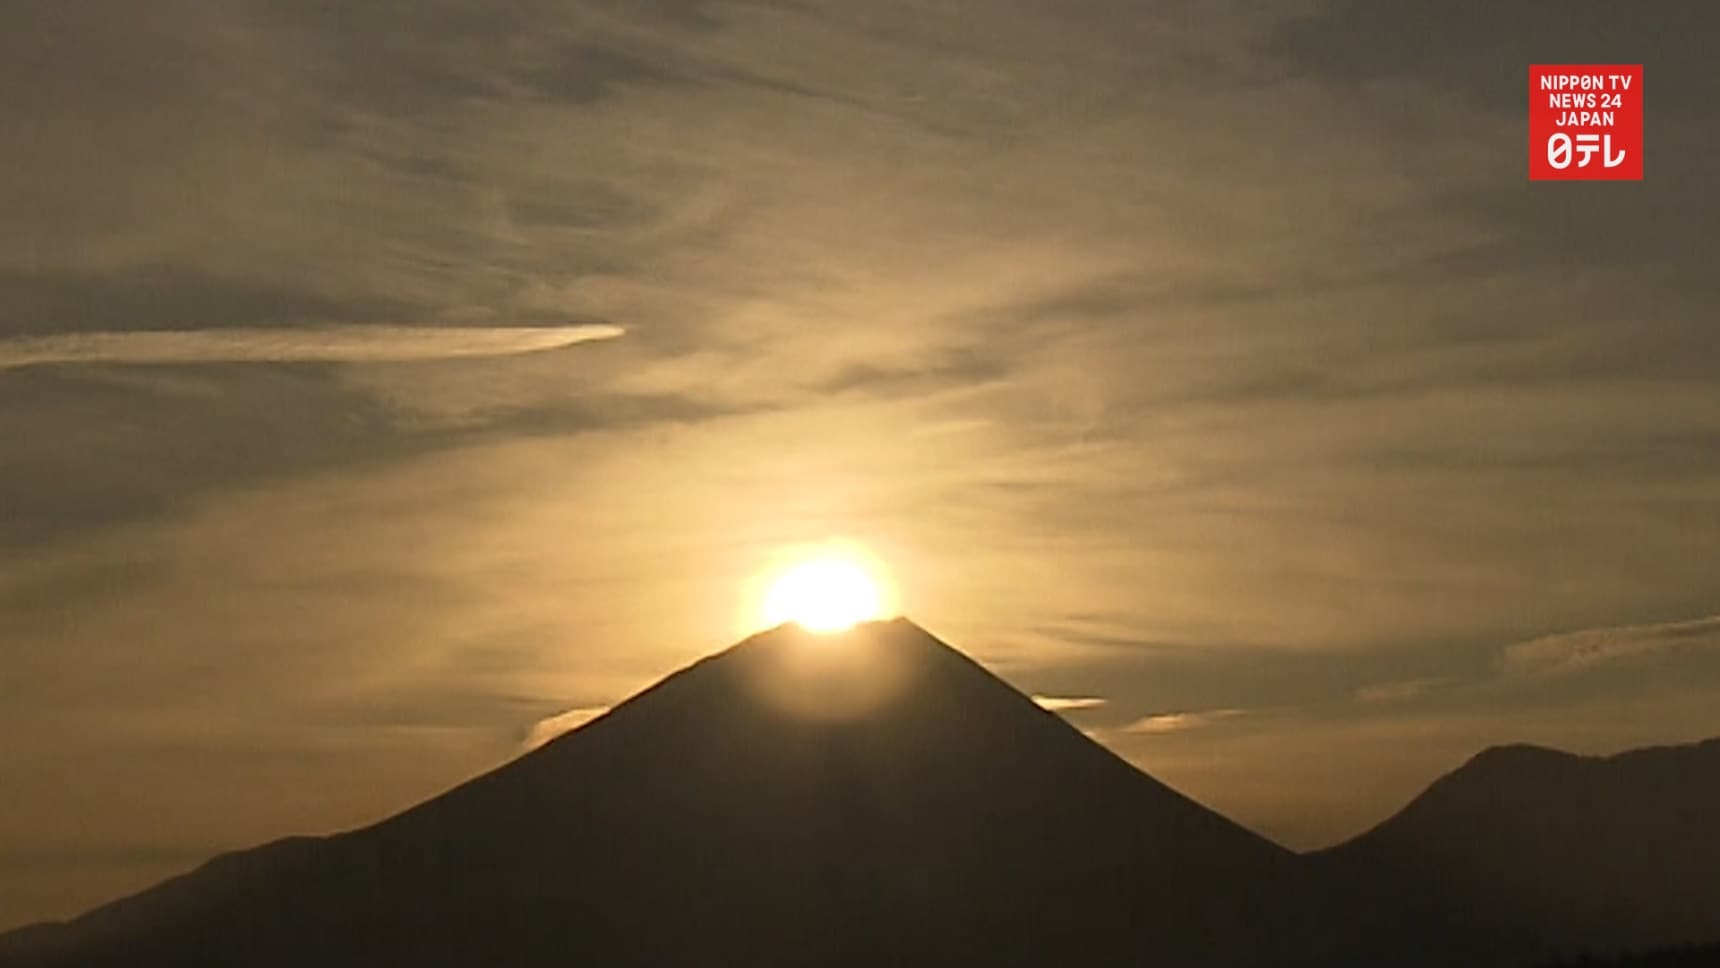 Mount Fuji Shining Bright Like a Diamond